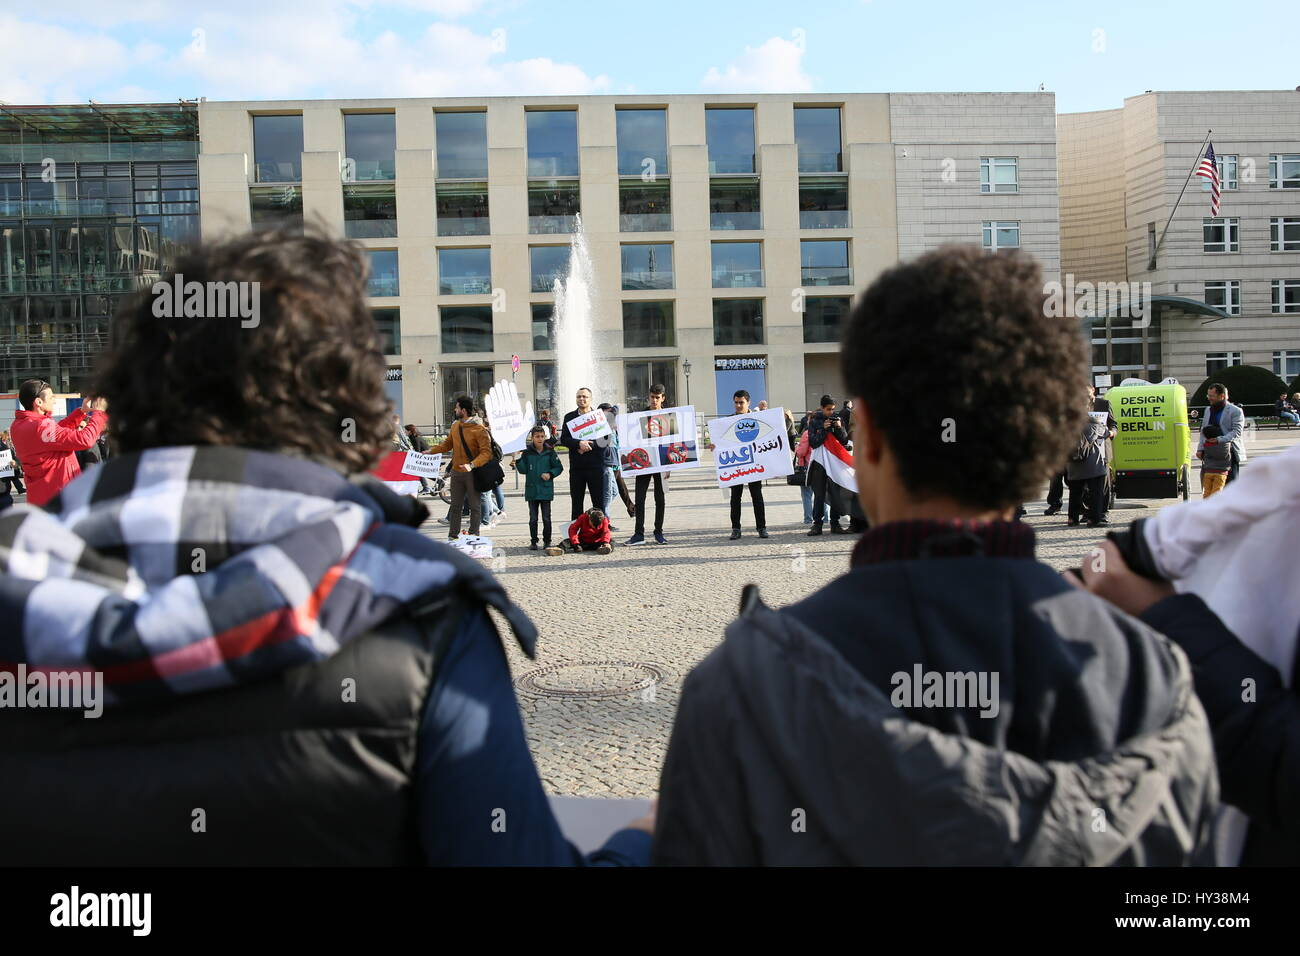 Berlin, Germany, April 18th, 2015: Protest against war in Yemen. - Stock Image